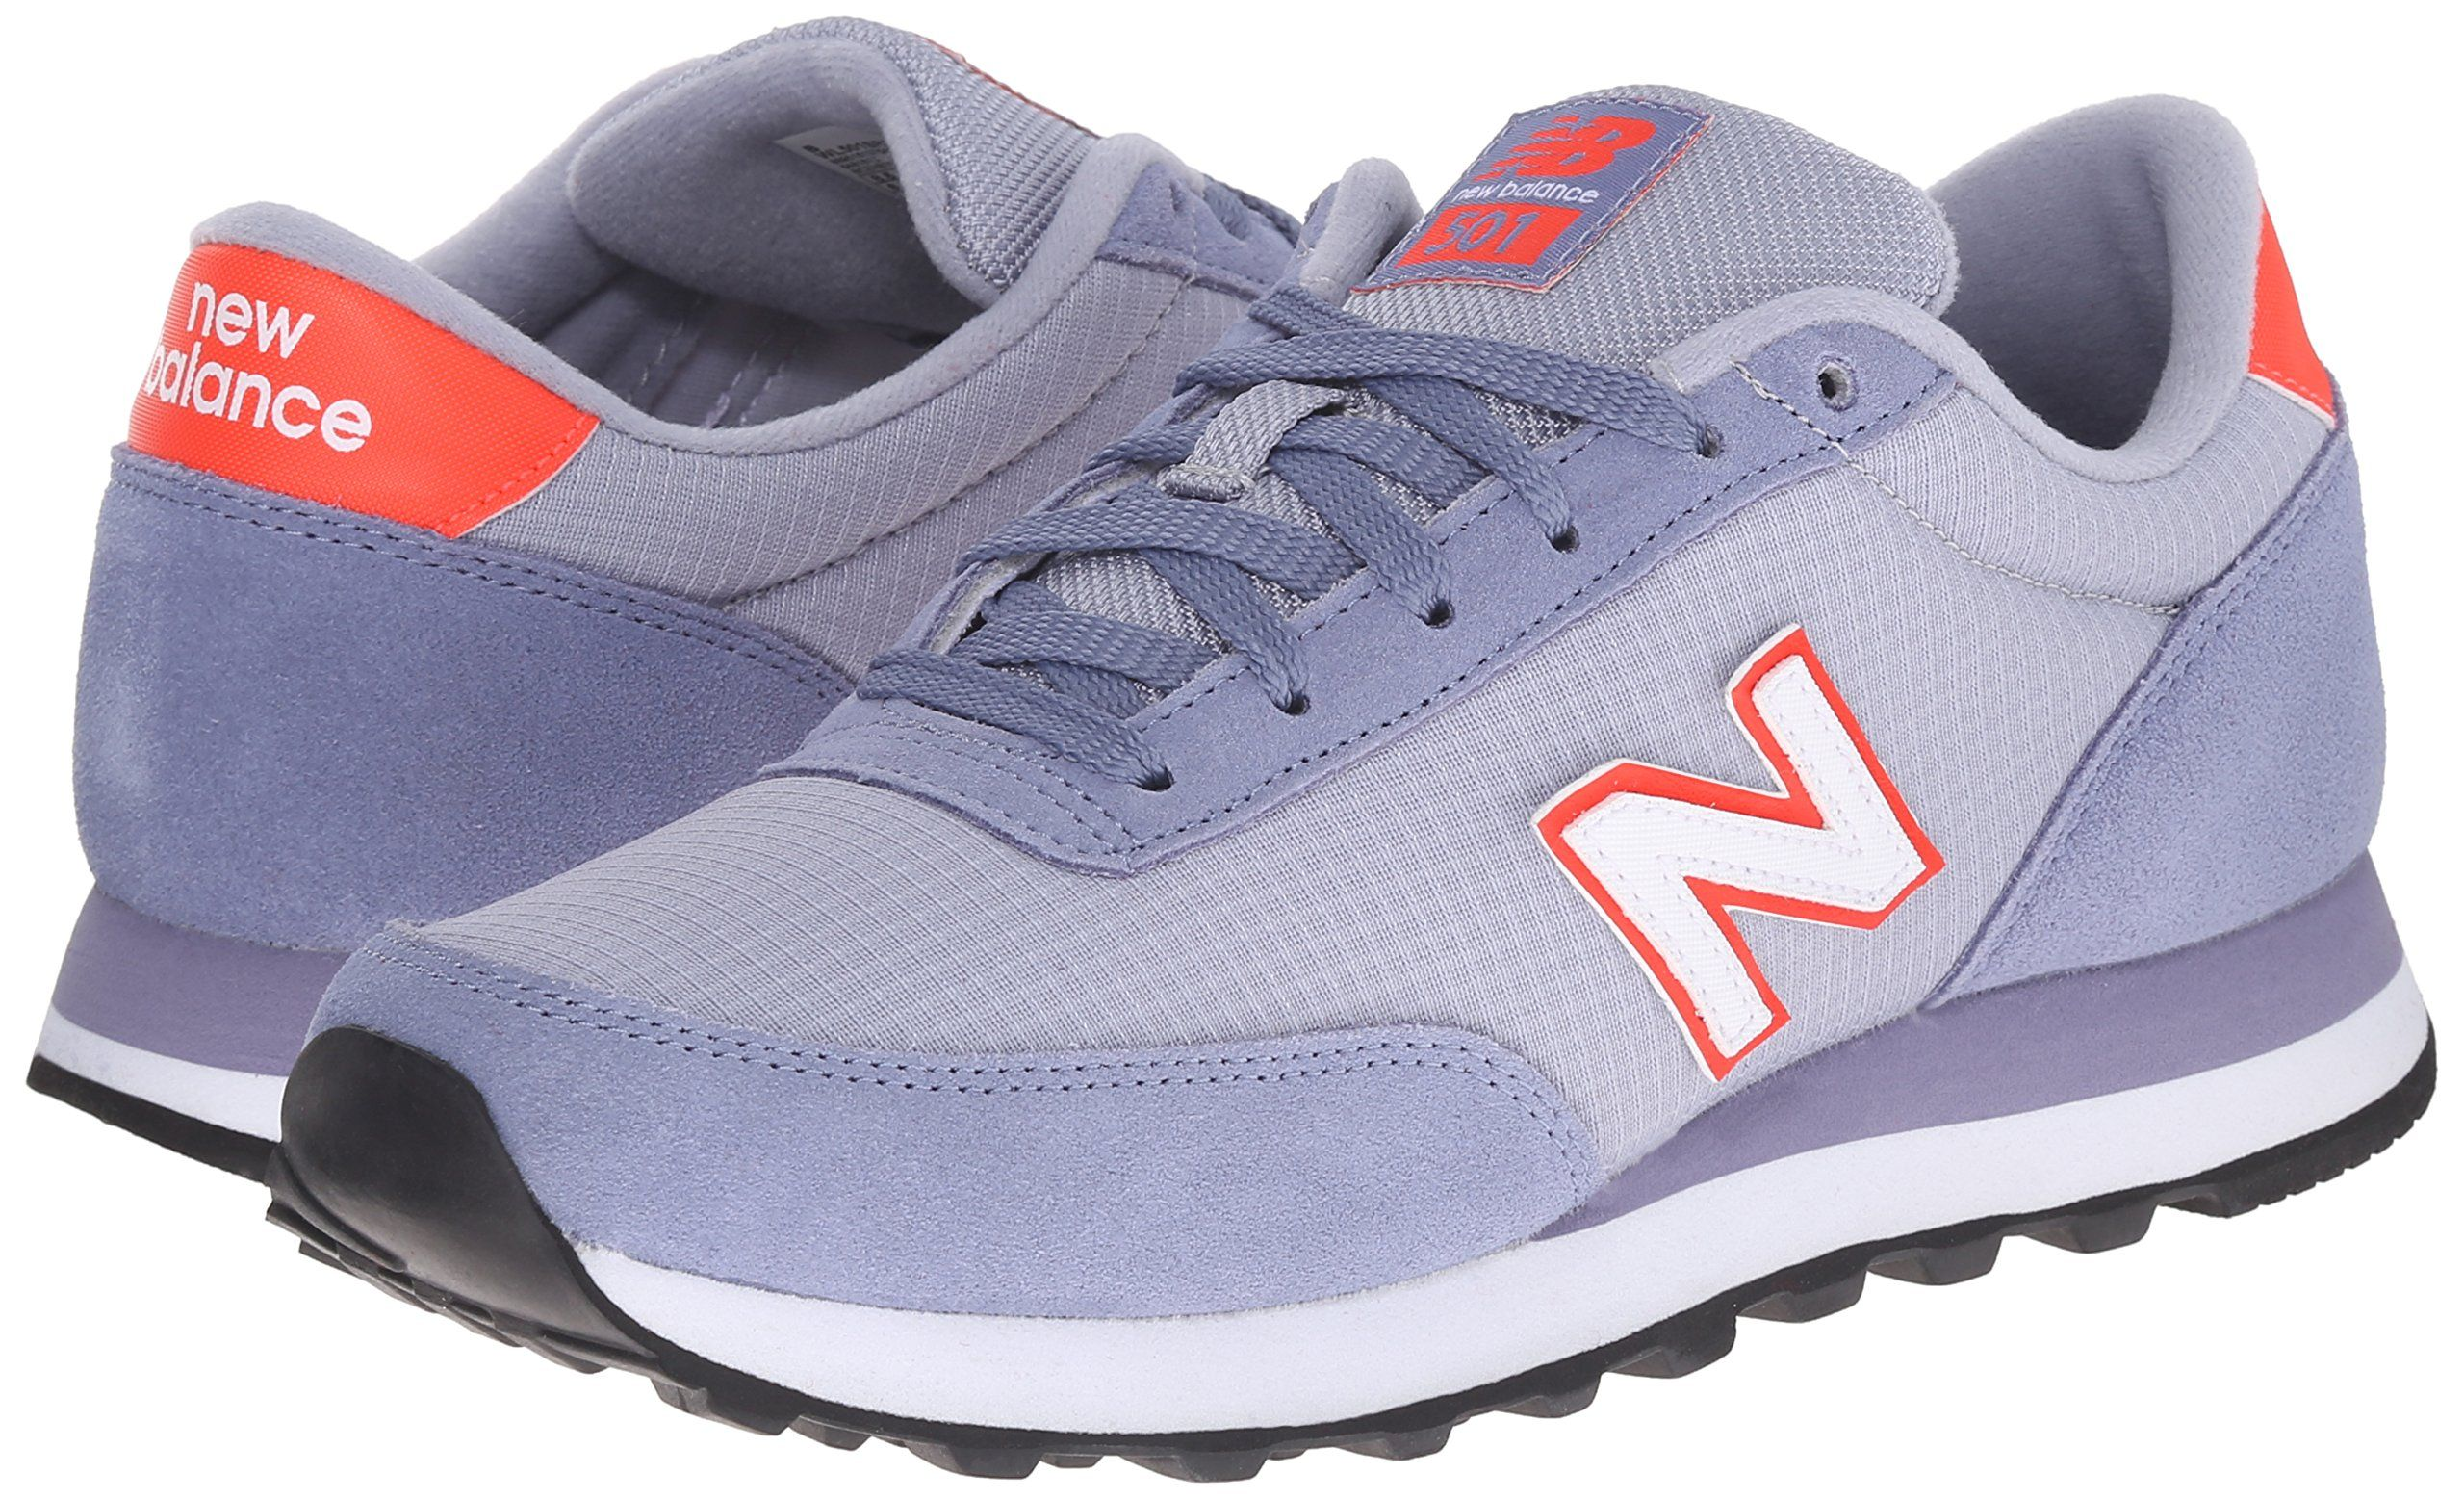 New Balance Women's WL501 Suede Ripstop Pack Classic Running Shoe, Lavender/Red, 7 B US